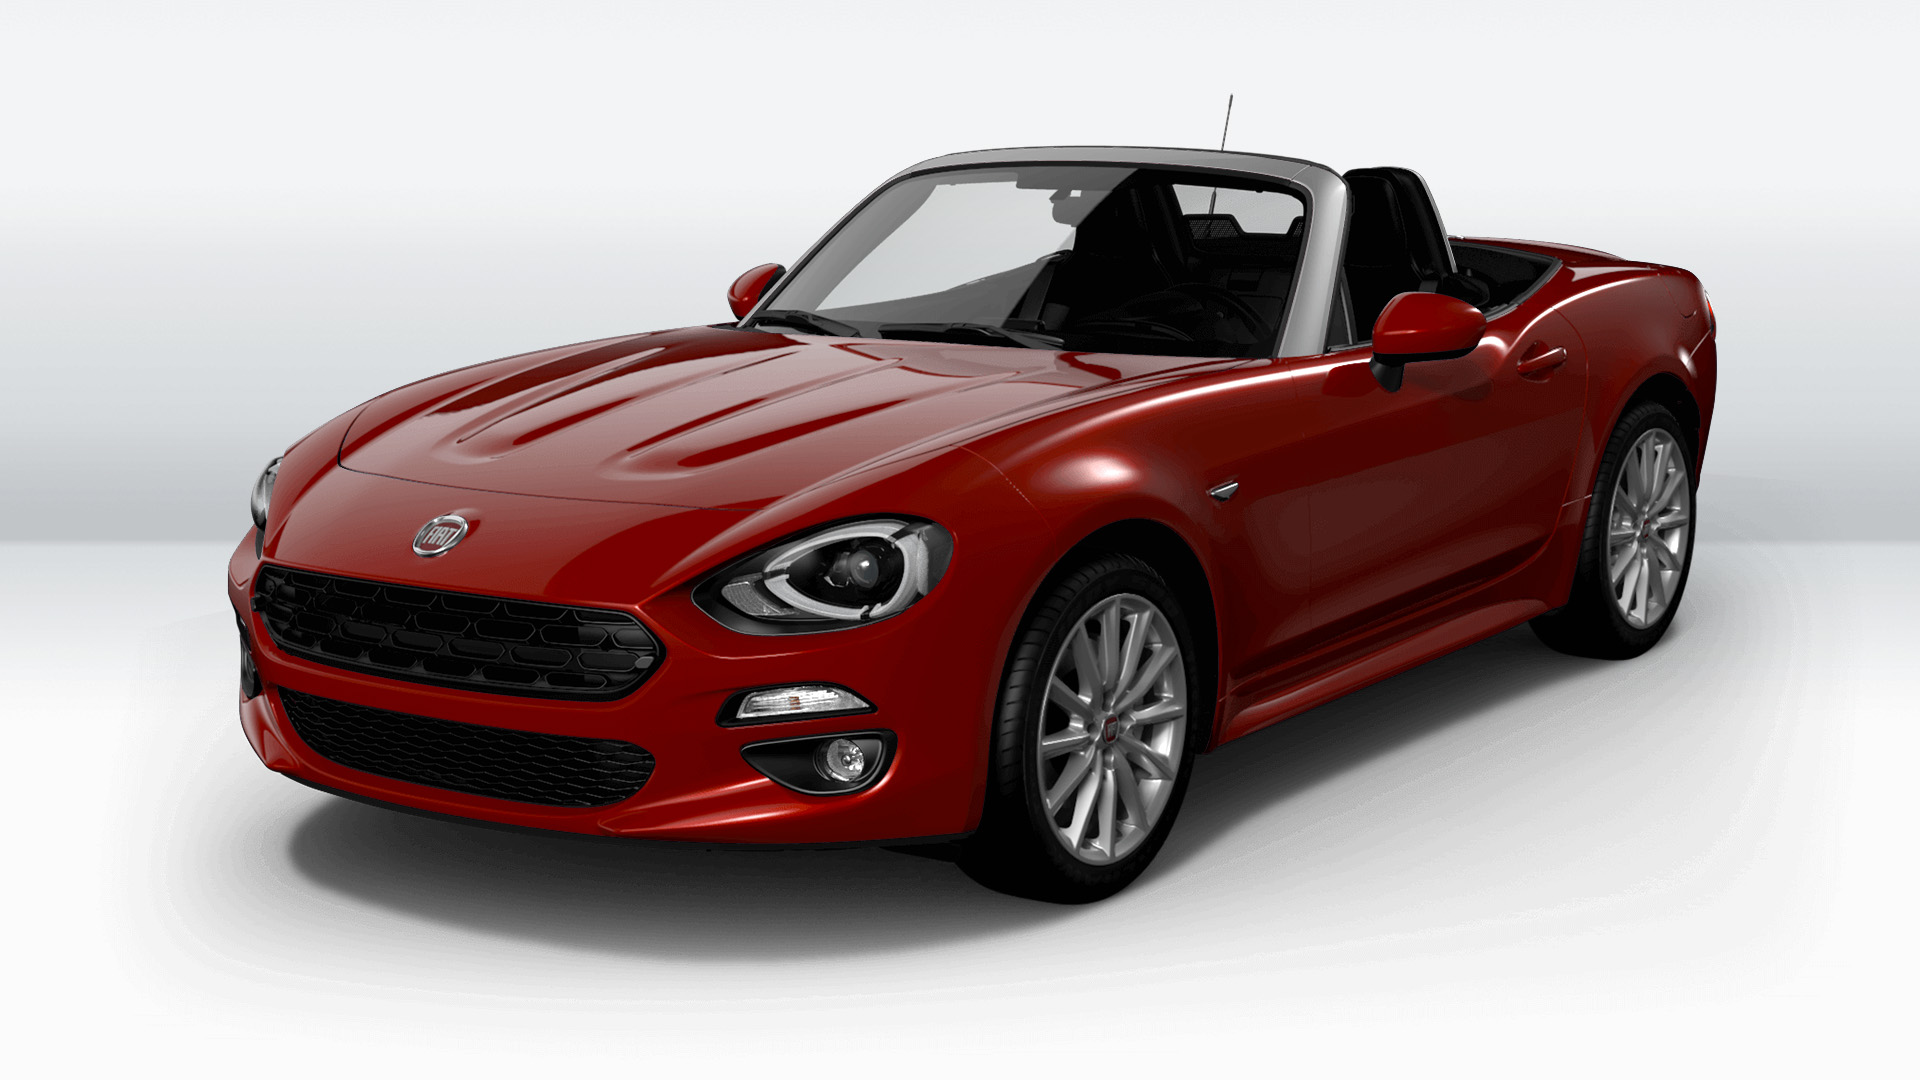 2017 yeni fiat 124 spider t rkiye fiyat a kland. Black Bedroom Furniture Sets. Home Design Ideas